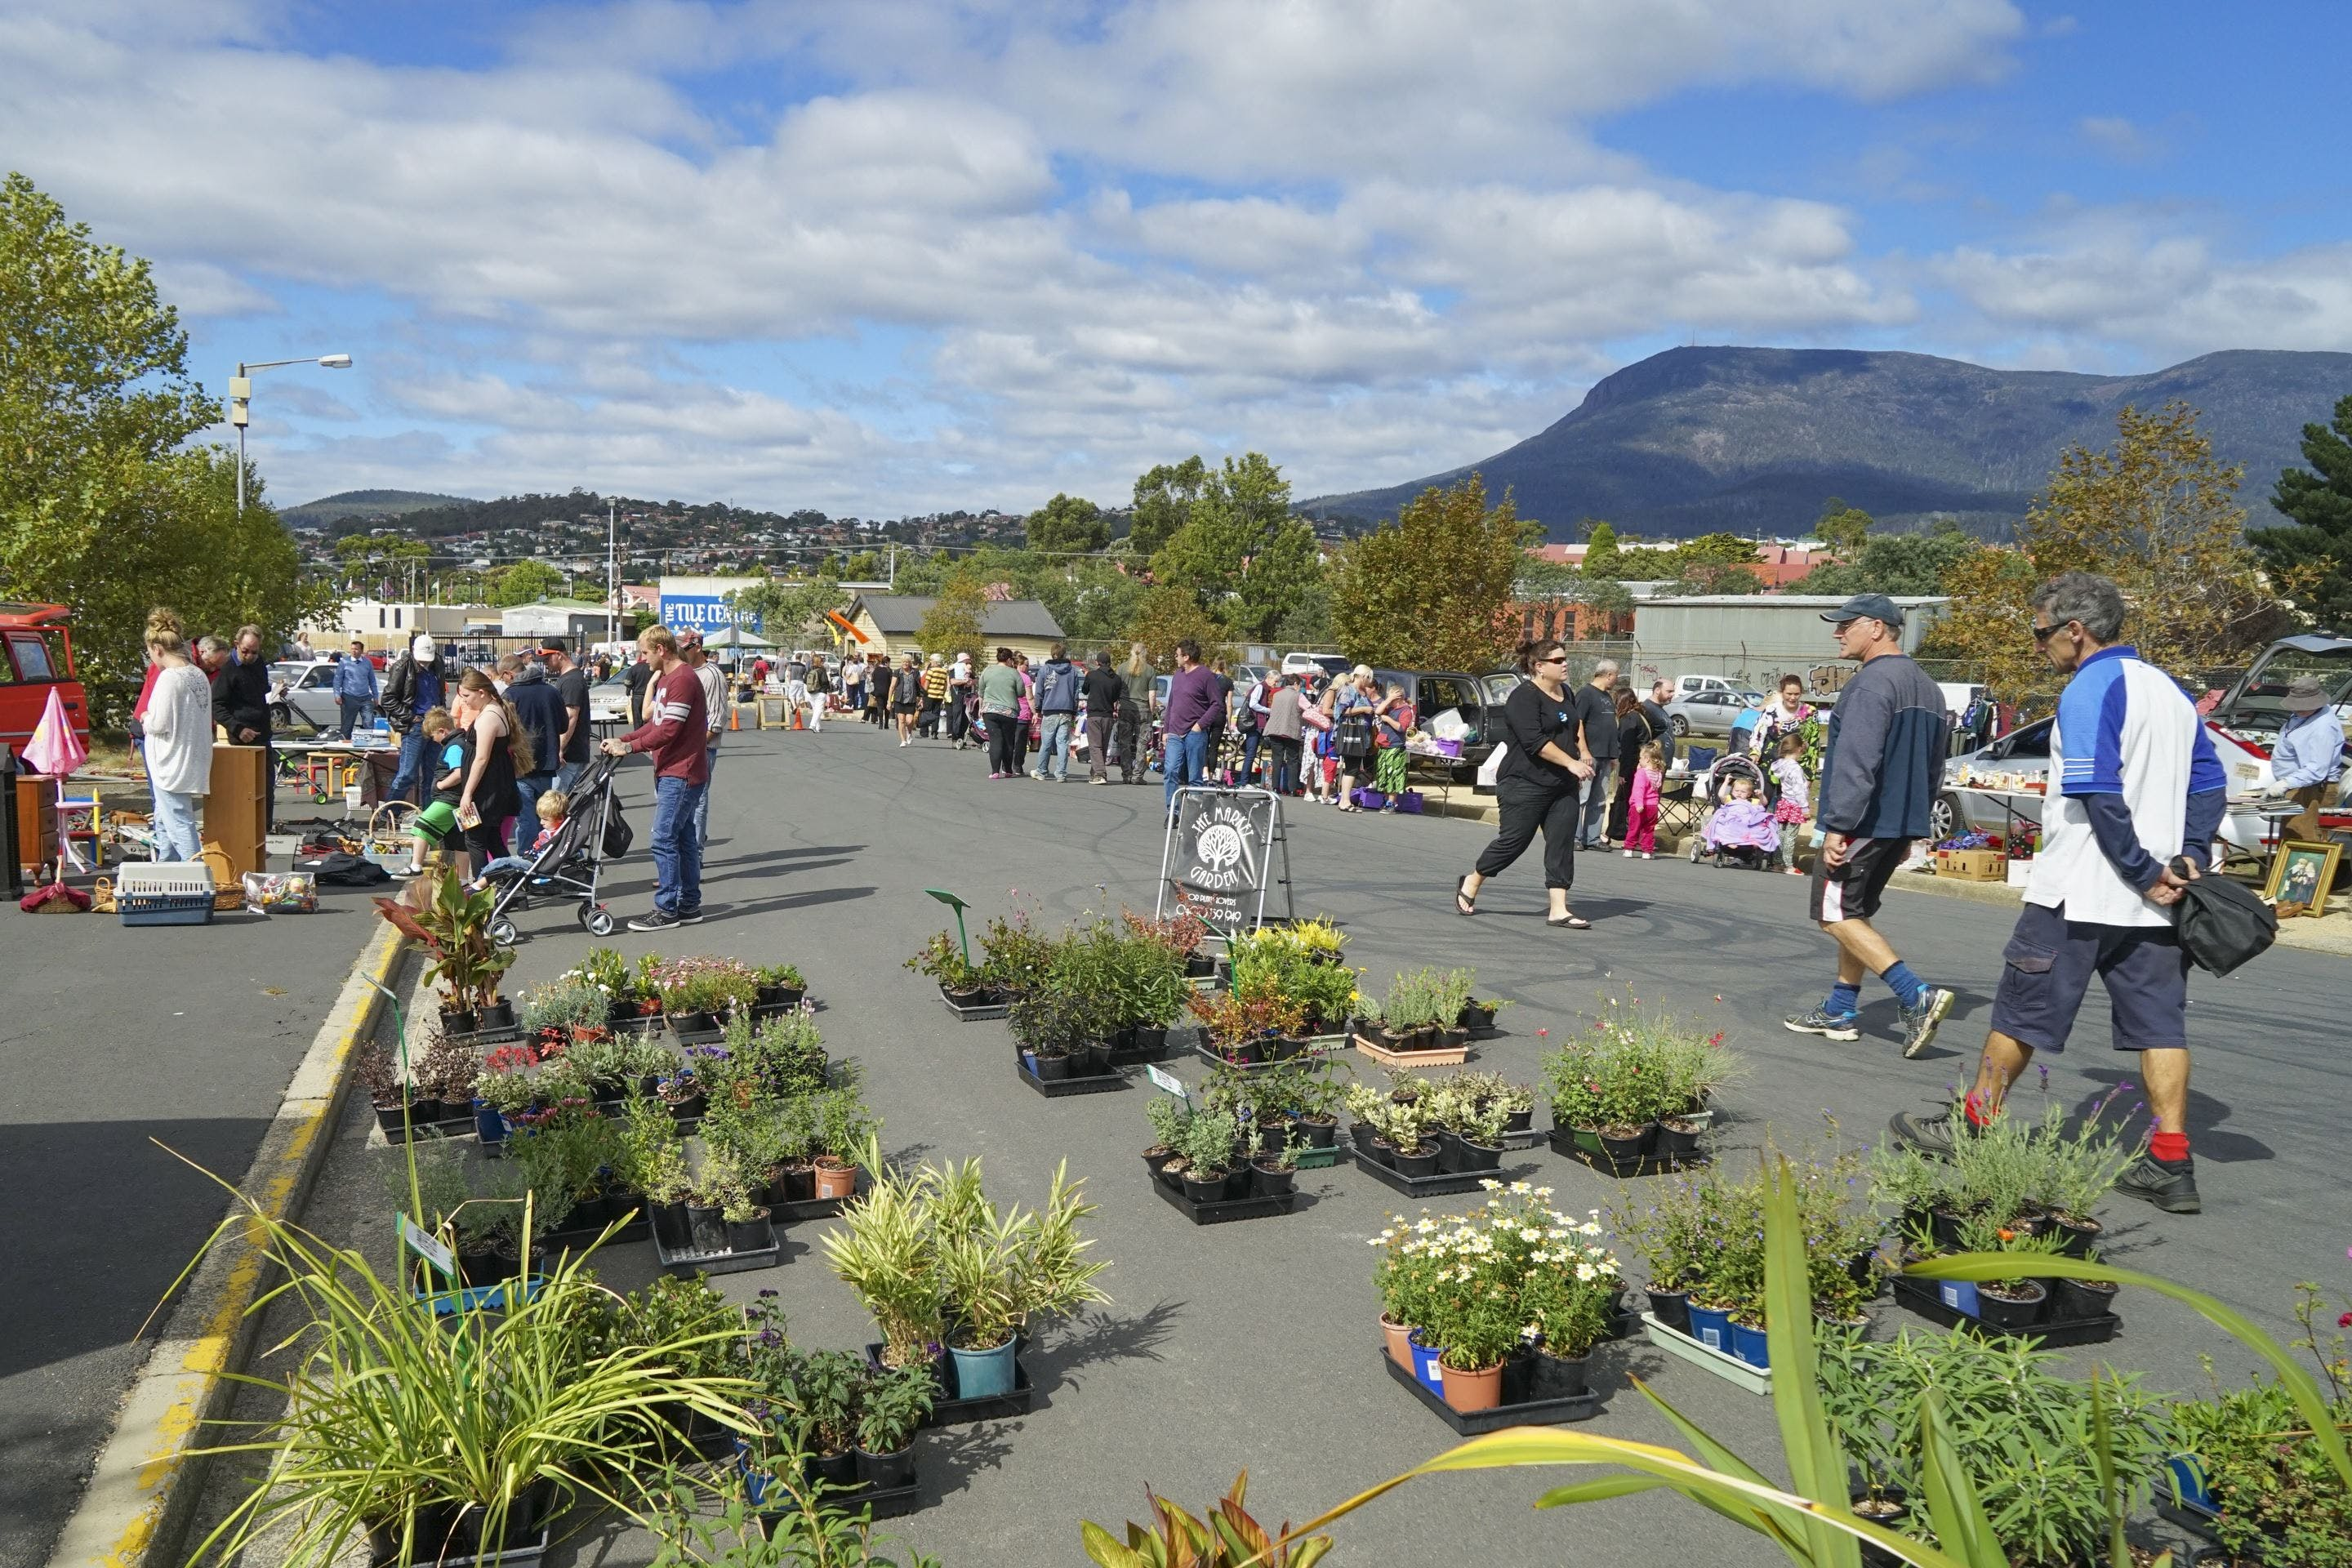 Hobart Showground Sunday Market - Weekly - Accommodation Tasmania